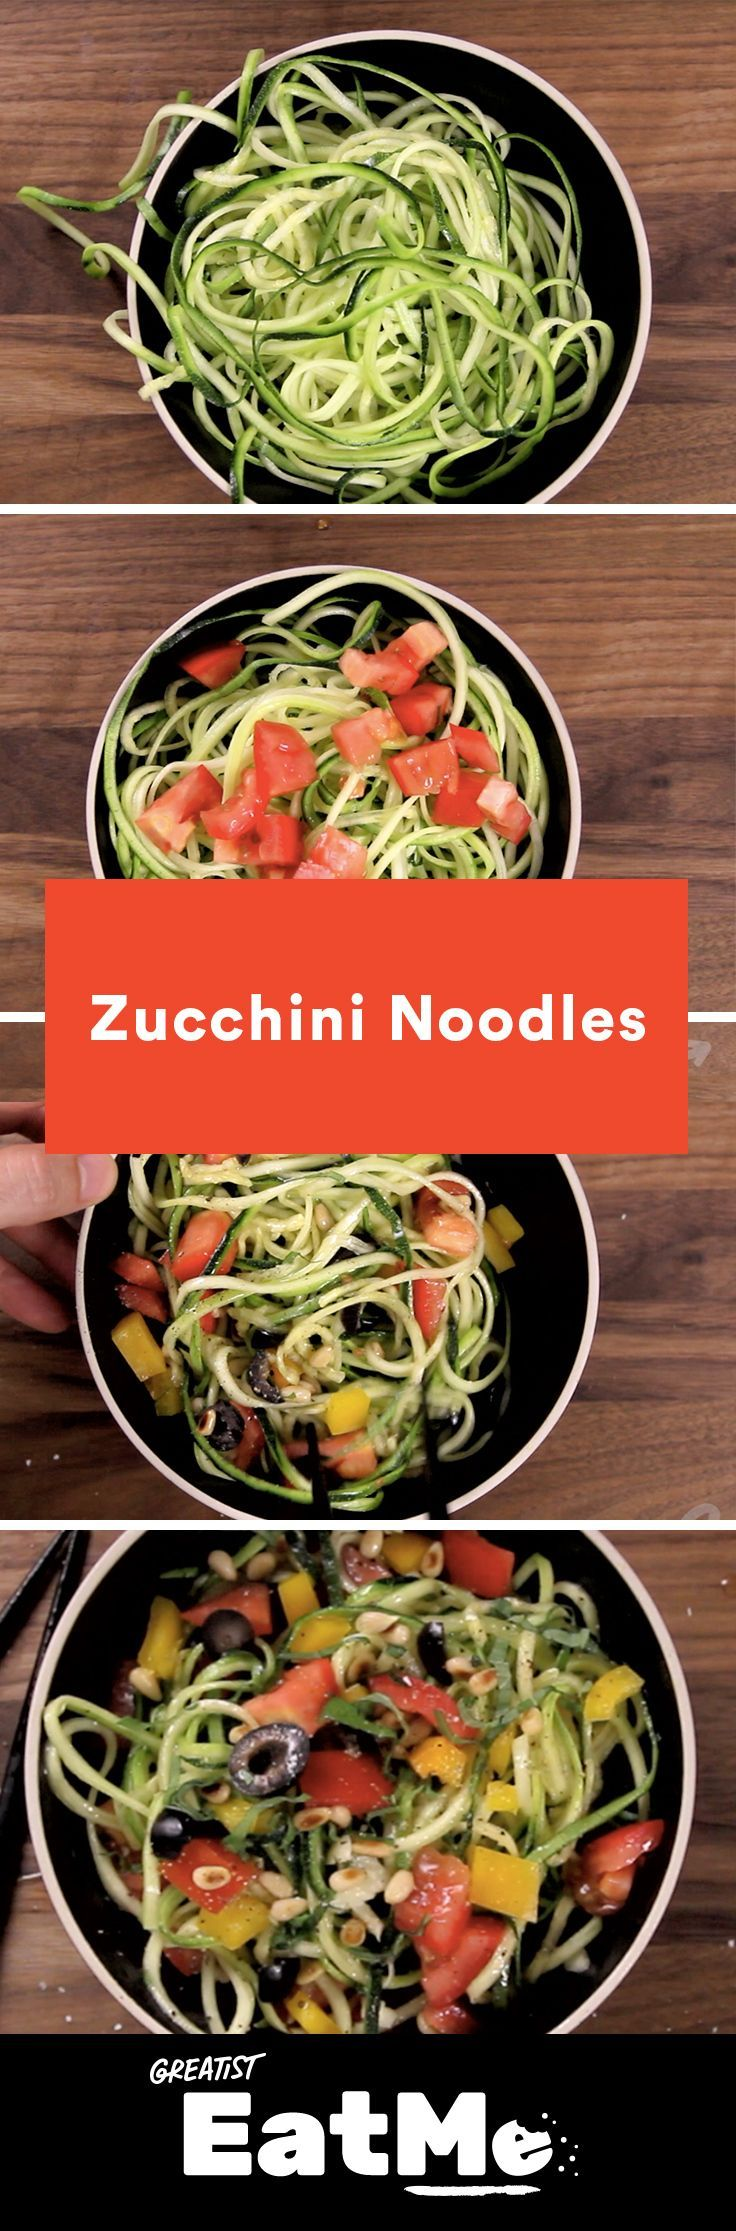 You need this zucchini noodle dinner in your life. #spiralized #zucchini #noodles http://greatist.com/eat/zucchini-noodles-recipe-video